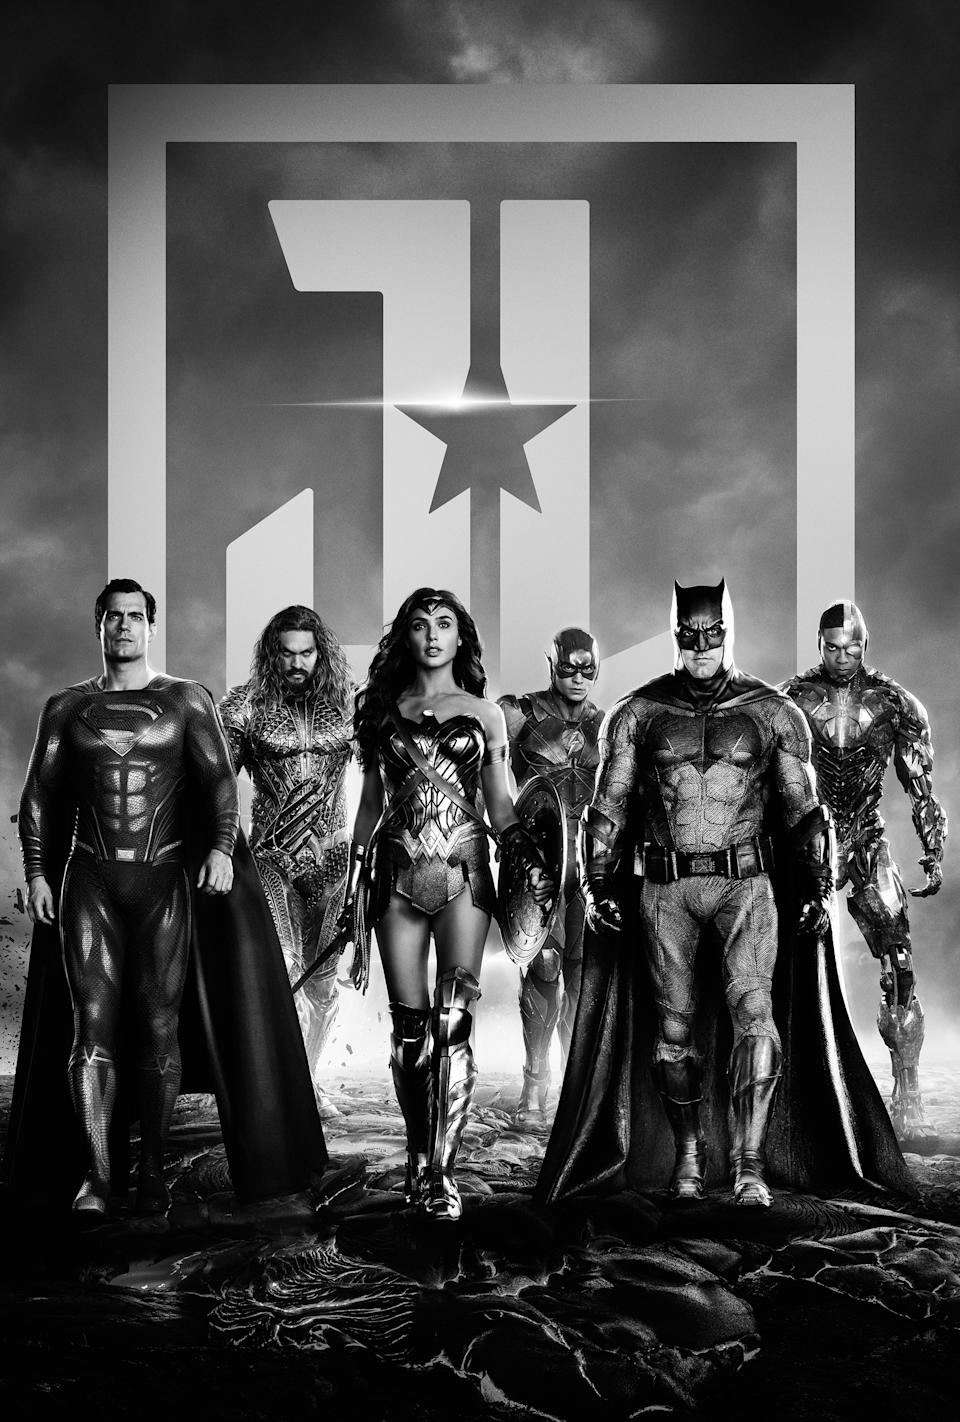 Zack Snyder's Justice League - Key Art - (Warner Bros)